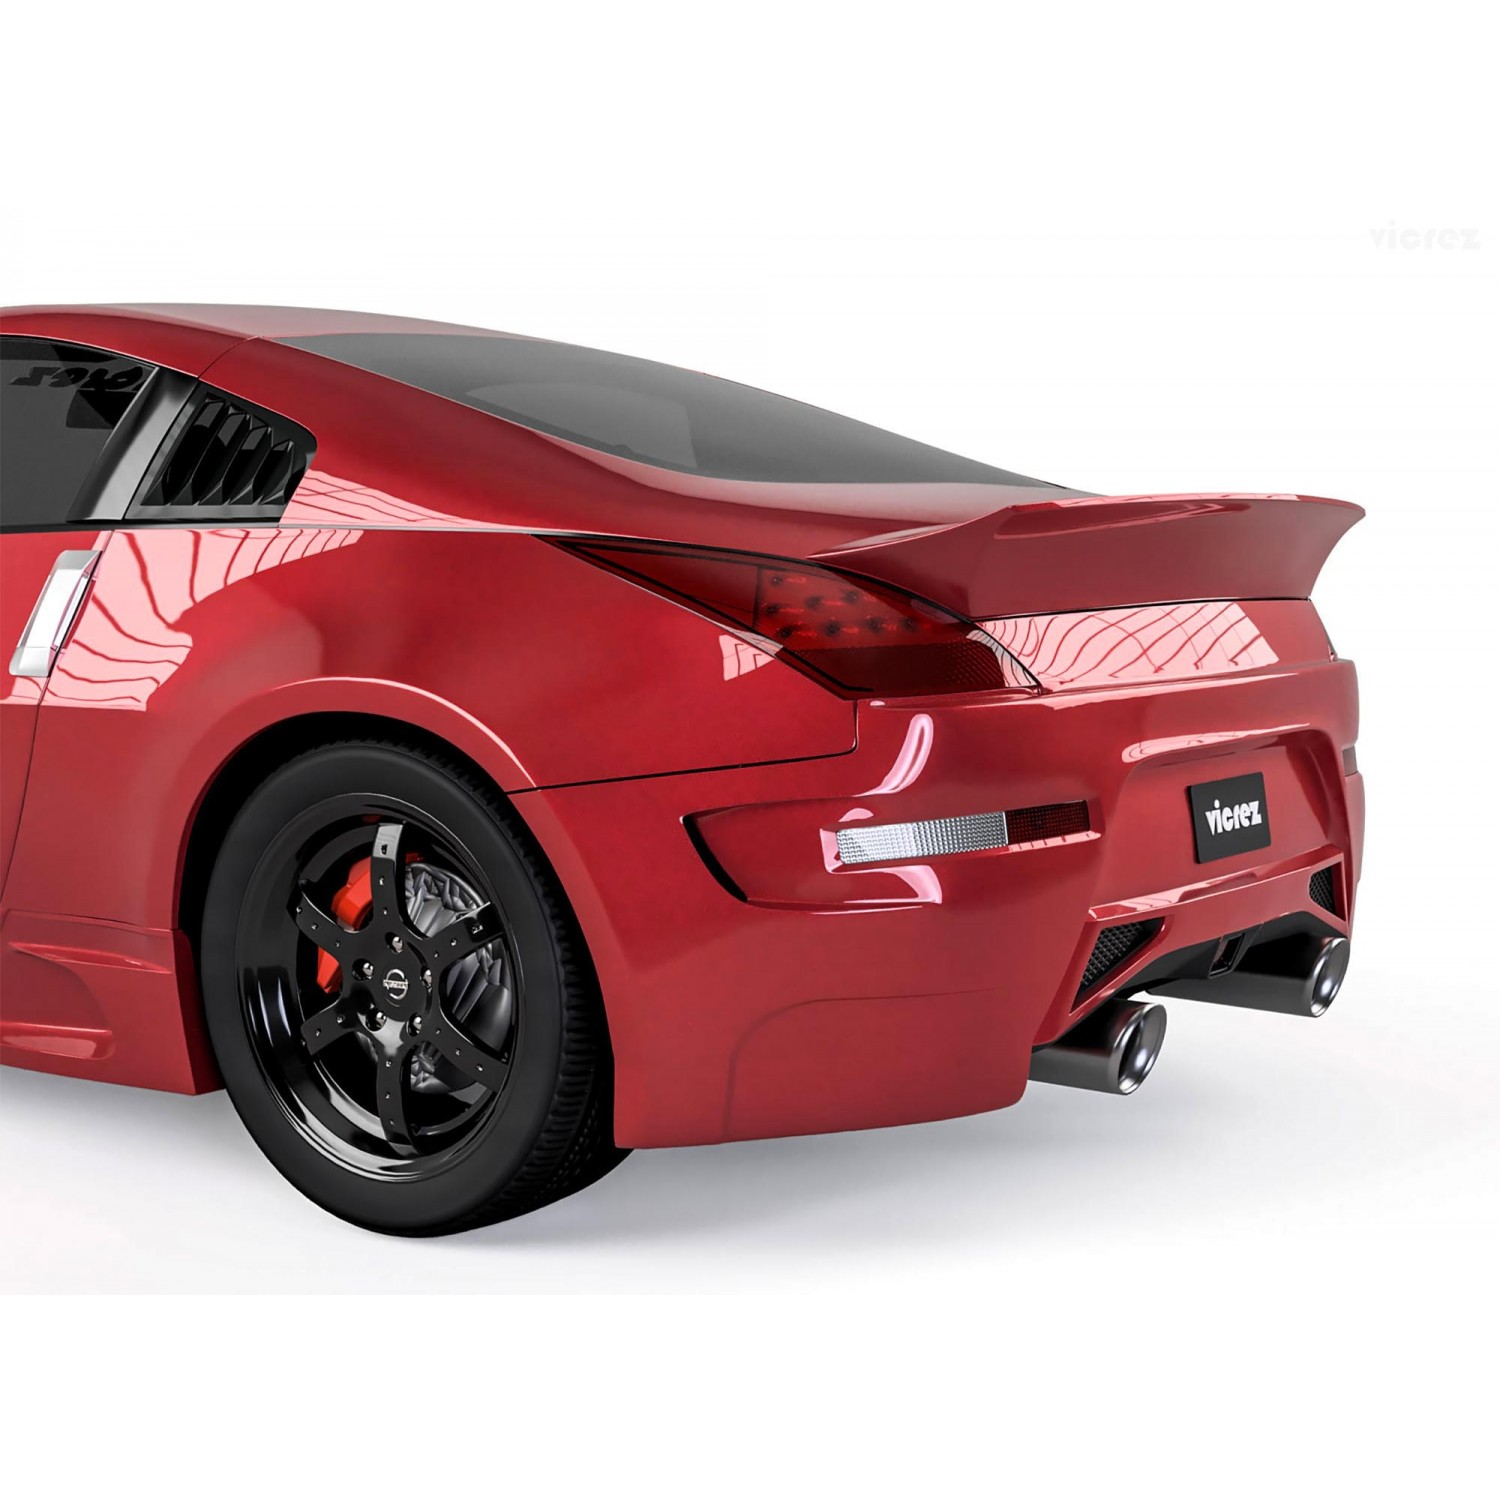 Awesome Affordable Cars Nissan 350Z YouTube Nissan GtR Nismo